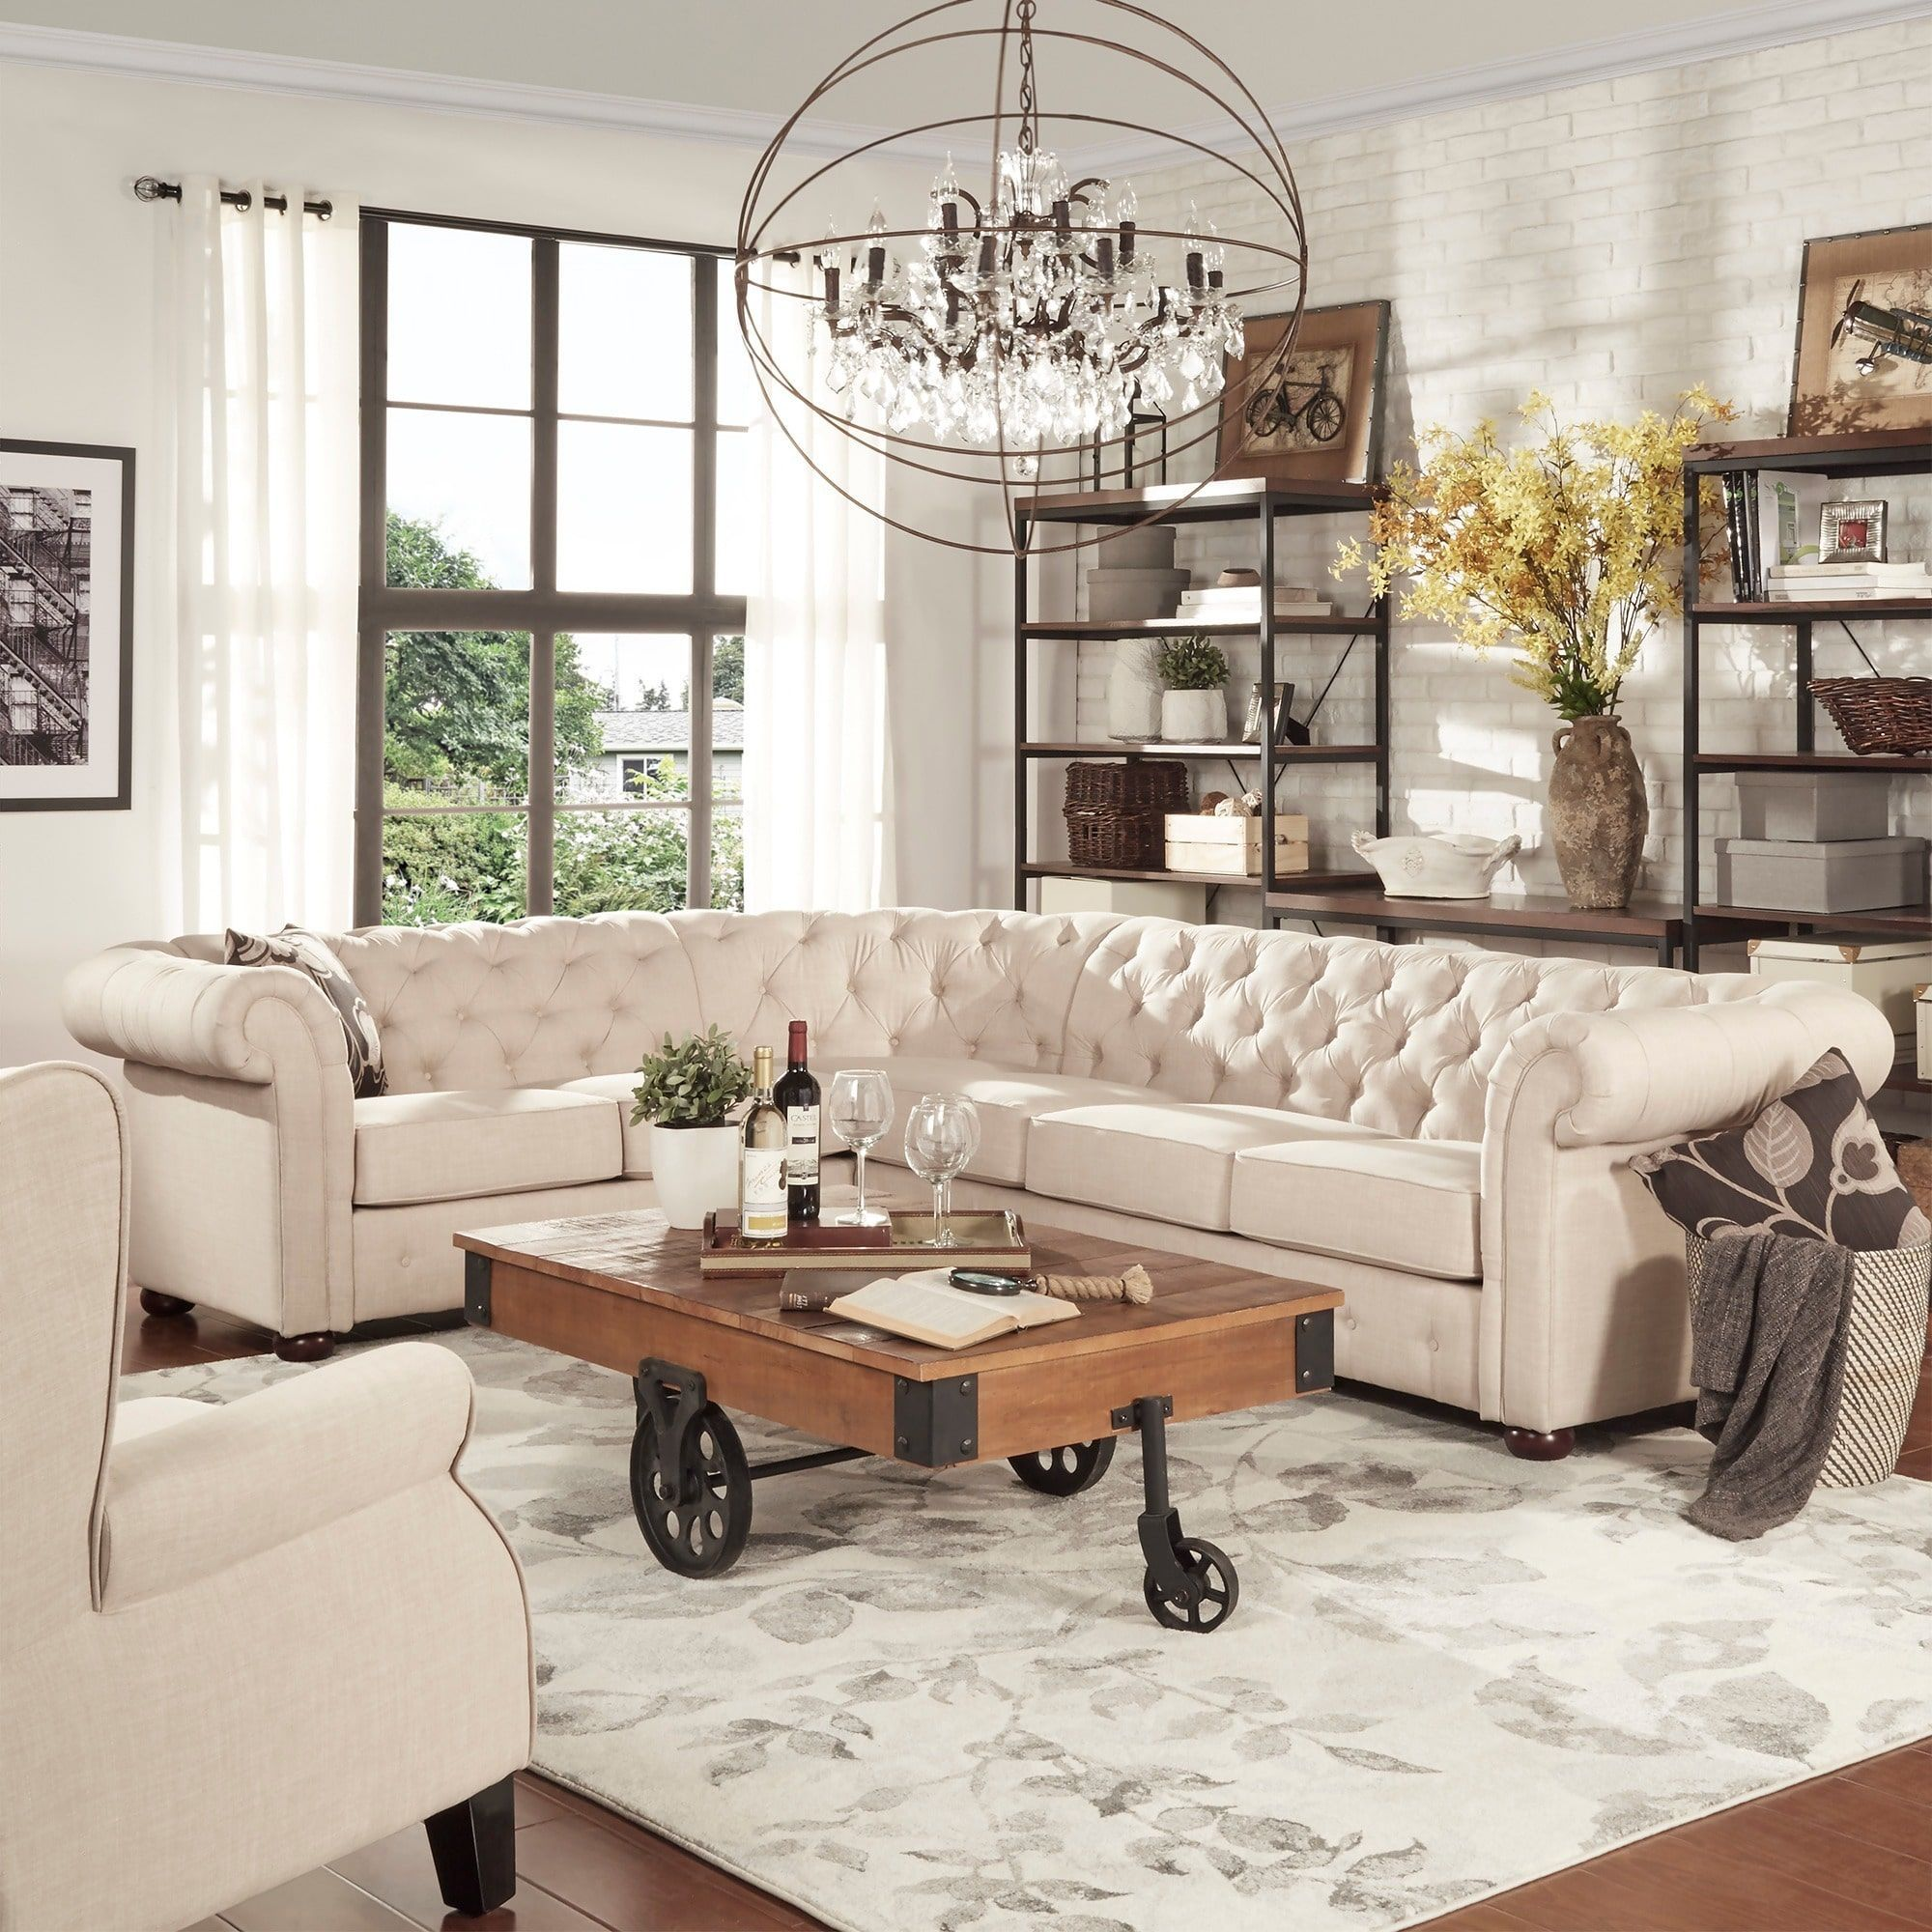 knightsbridge tufted scroll arm chesterfield 6 seat l shaped sectional by inspire q artisan. Black Bedroom Furniture Sets. Home Design Ideas